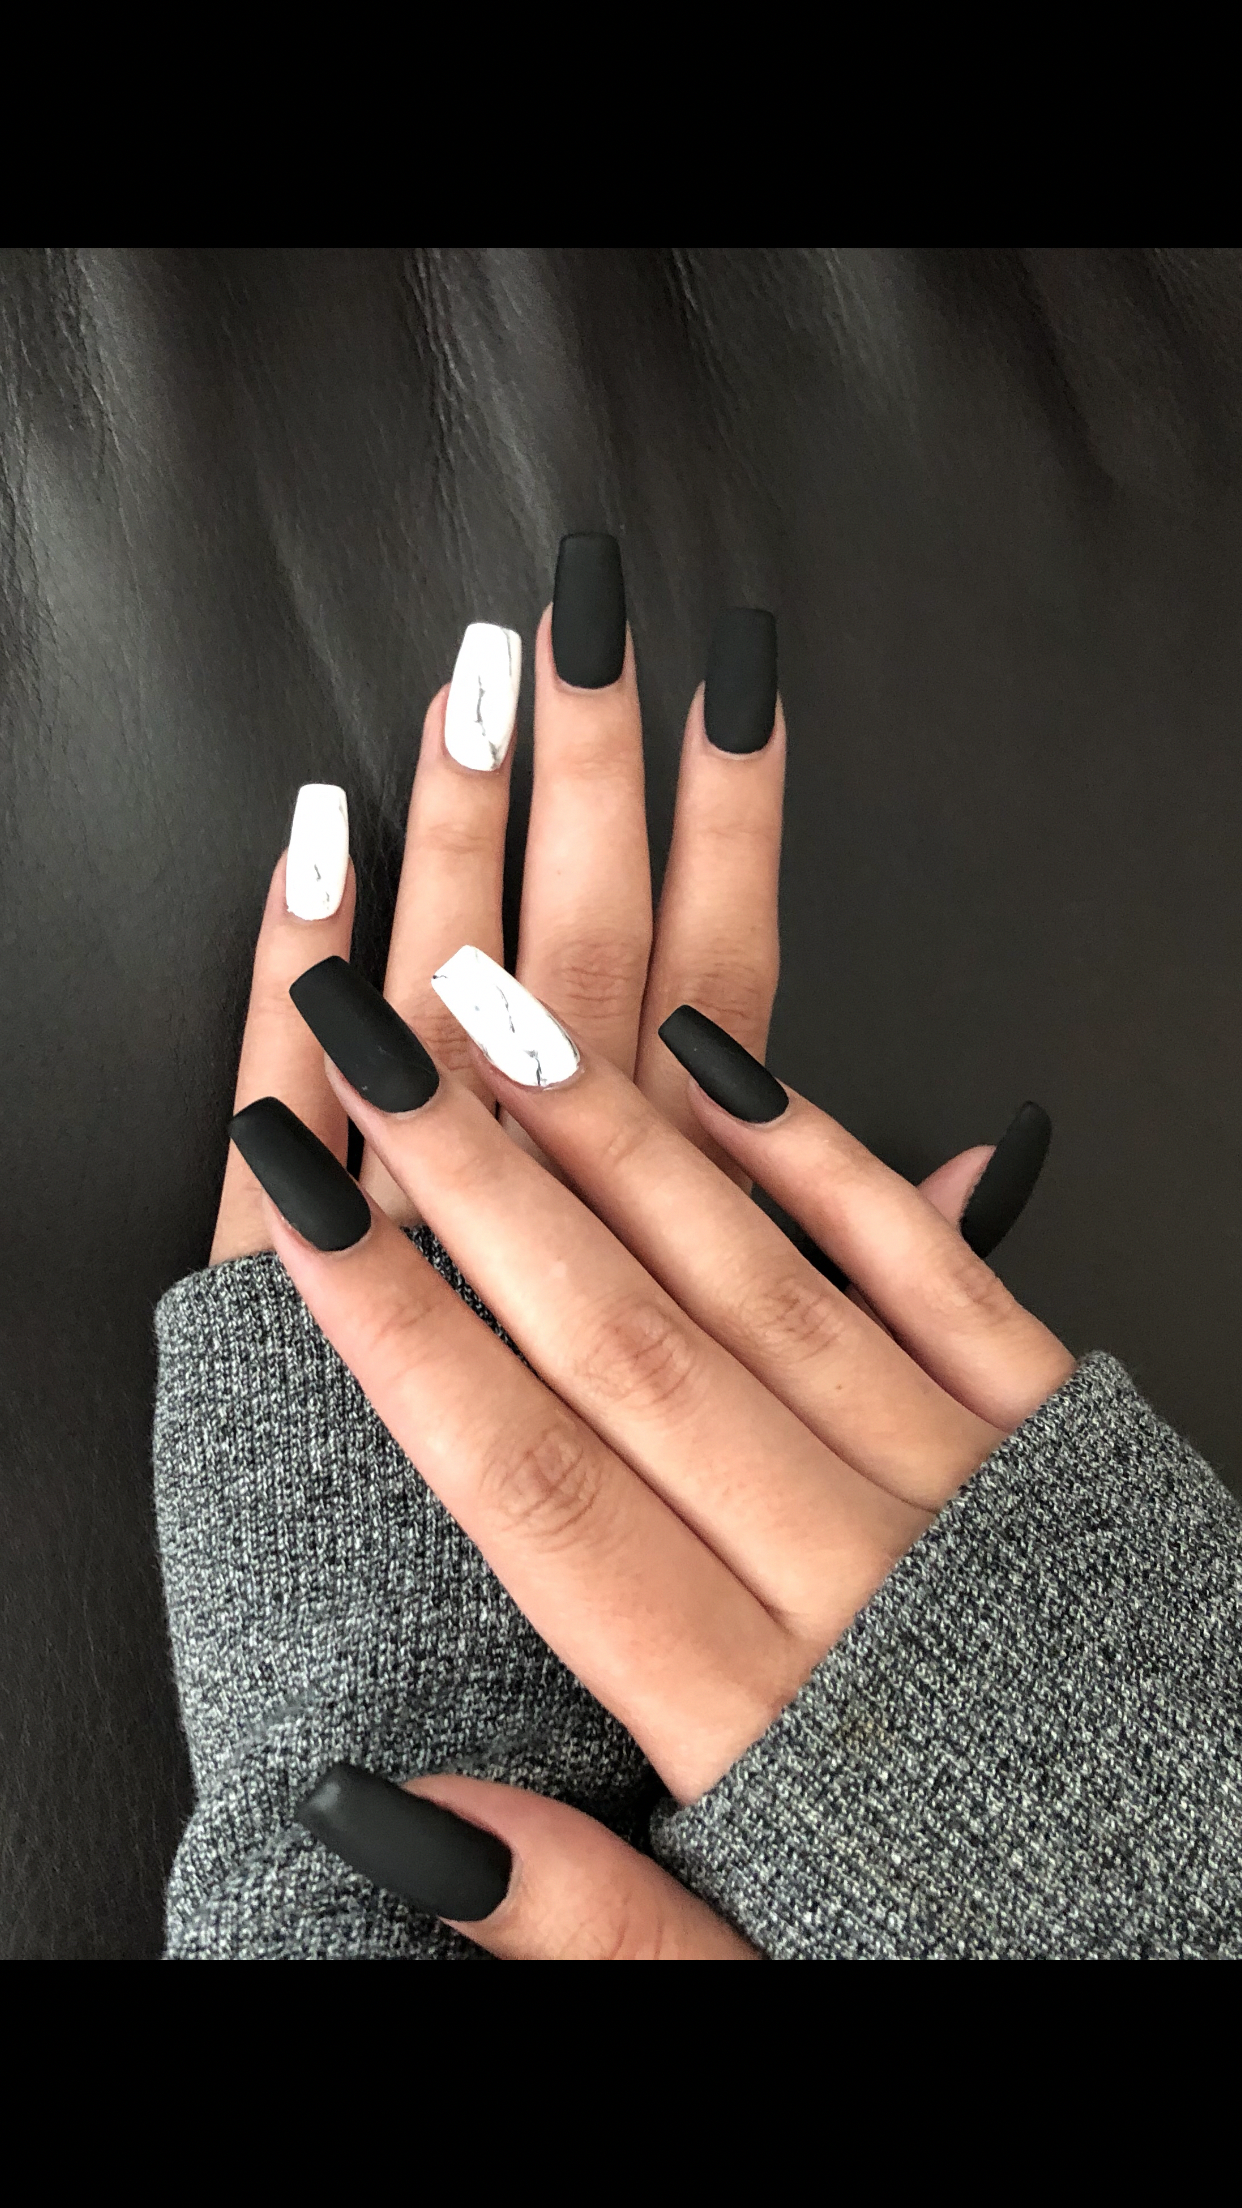 Matte Black And Marble Marblenails Holographic Nails Cute Black Nails Solid Color Nails